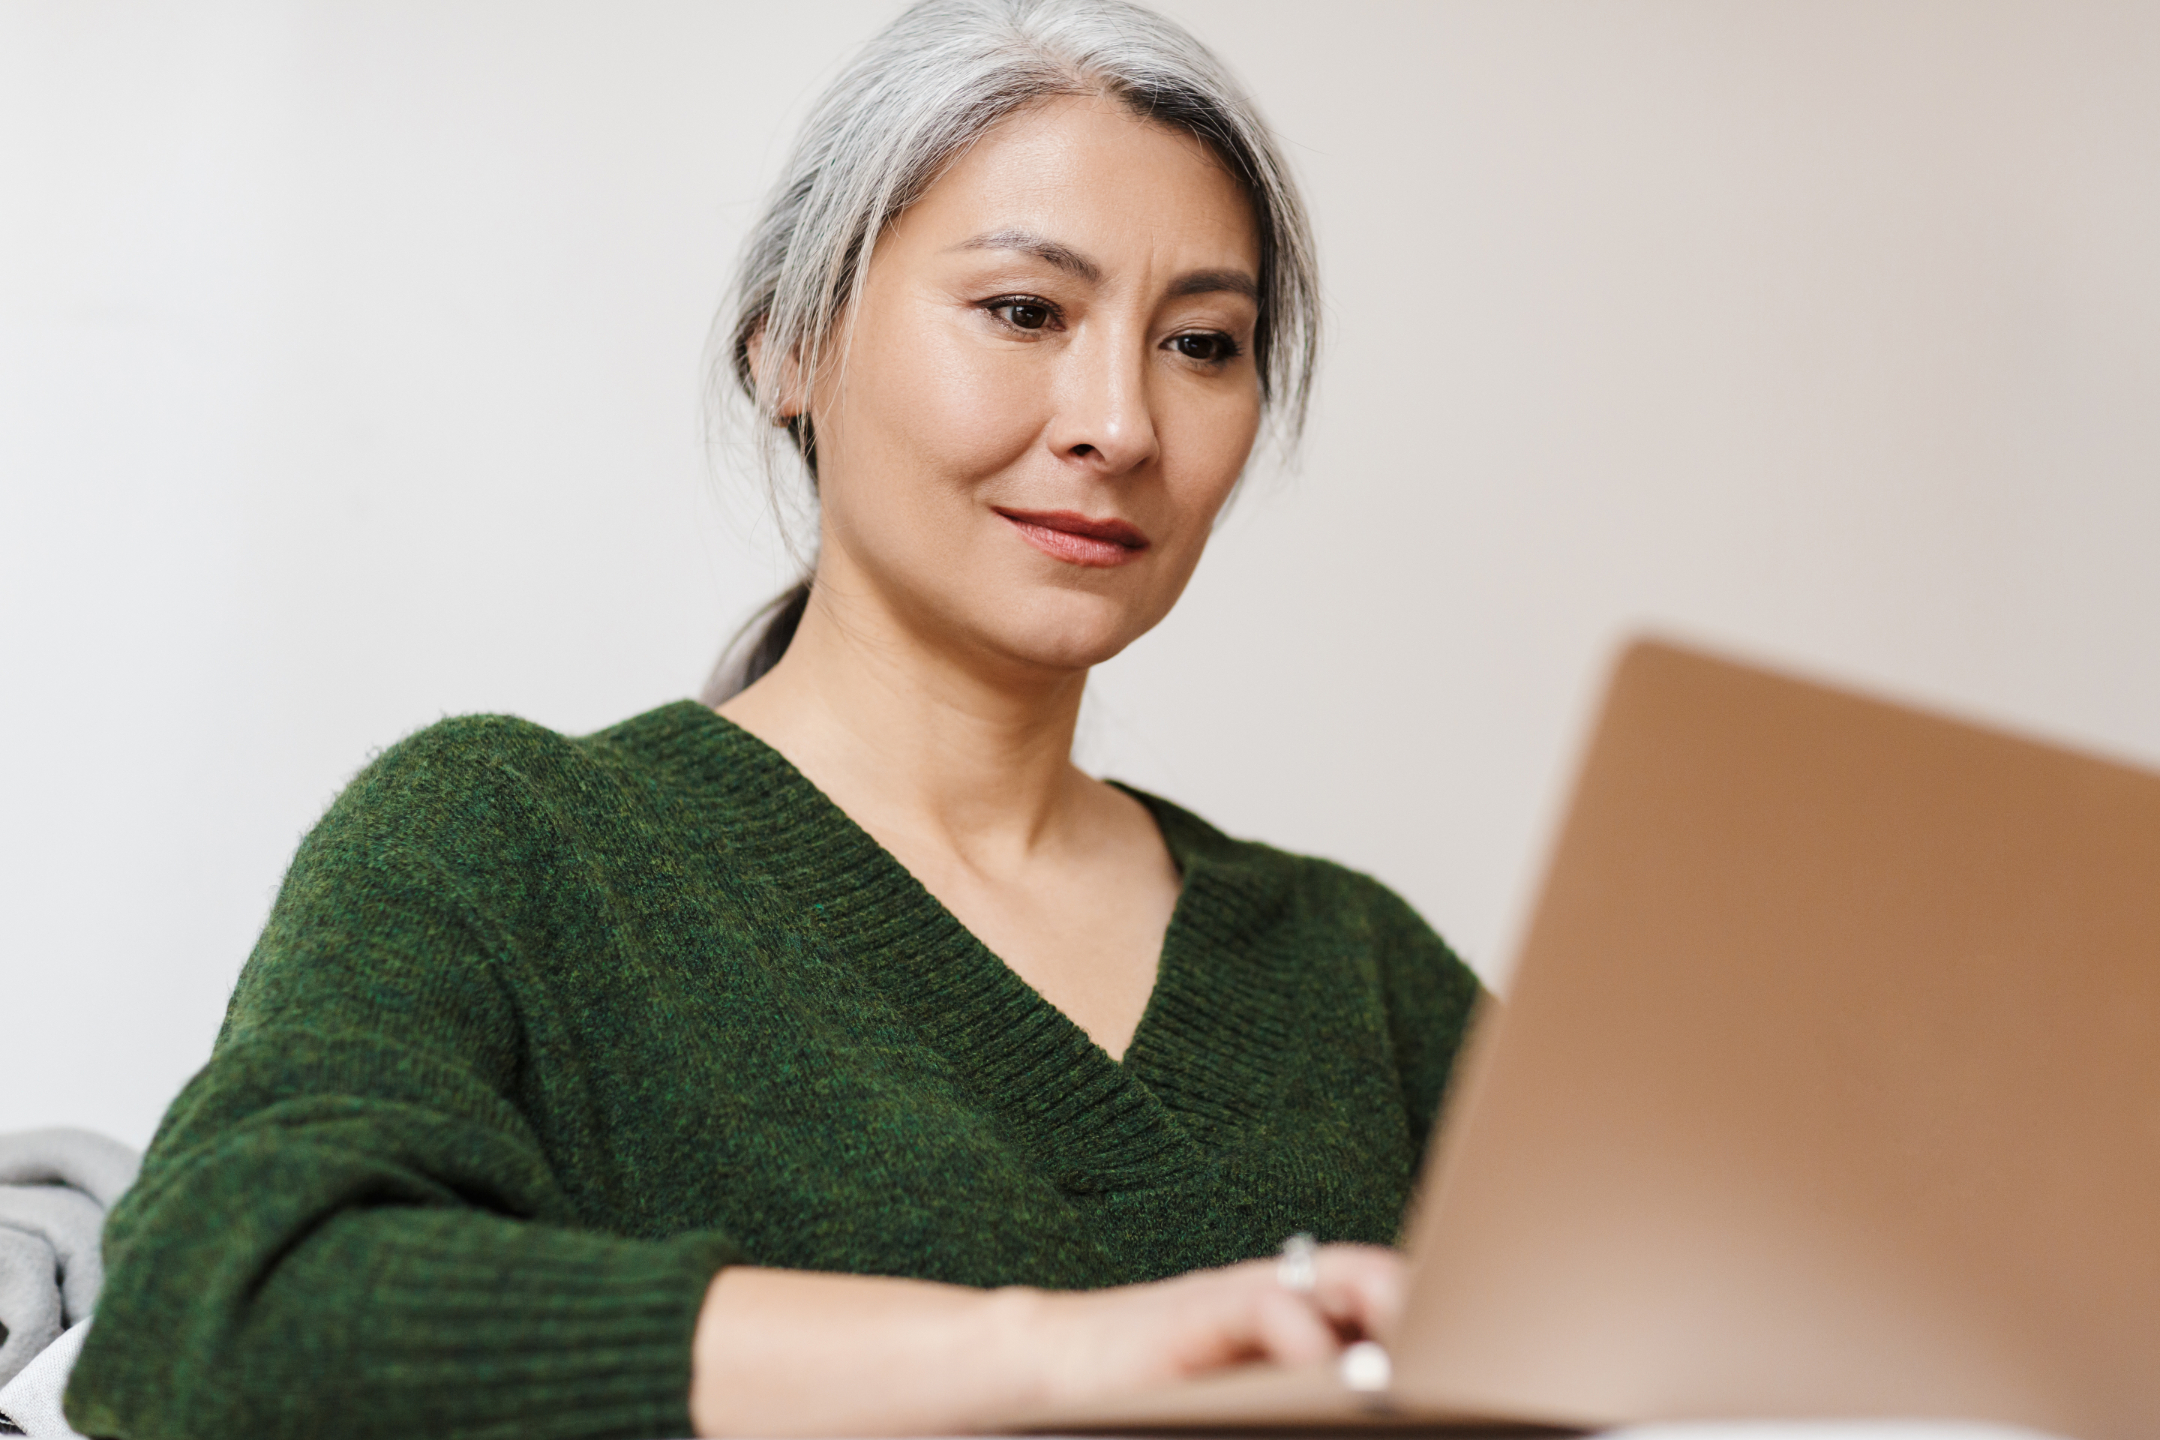 329803286-mature-asian-woman-working-at-laptop-2160px